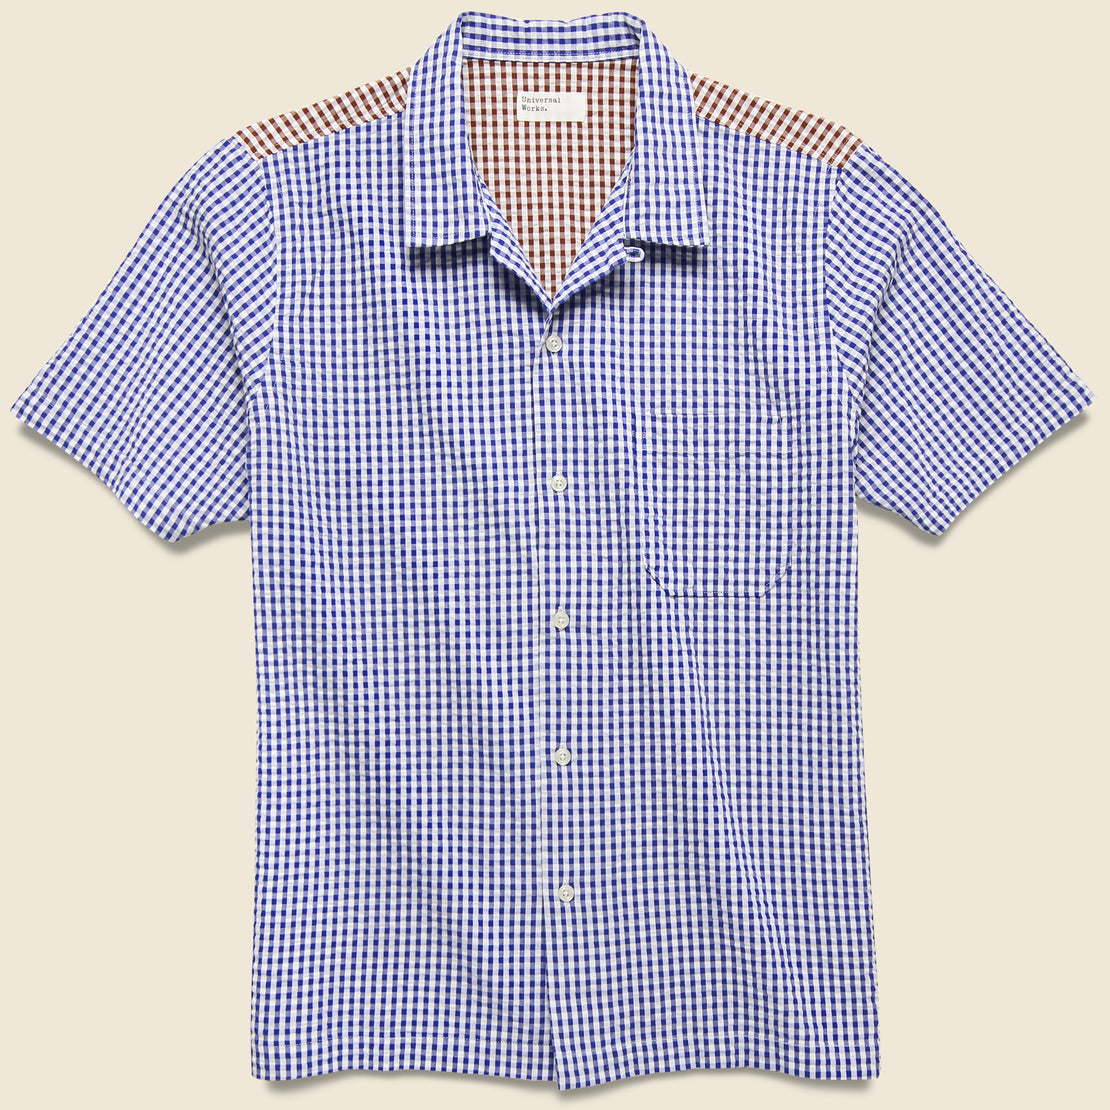 Universal Works Road Shirt - Blue/Brown Gingham Seersucker